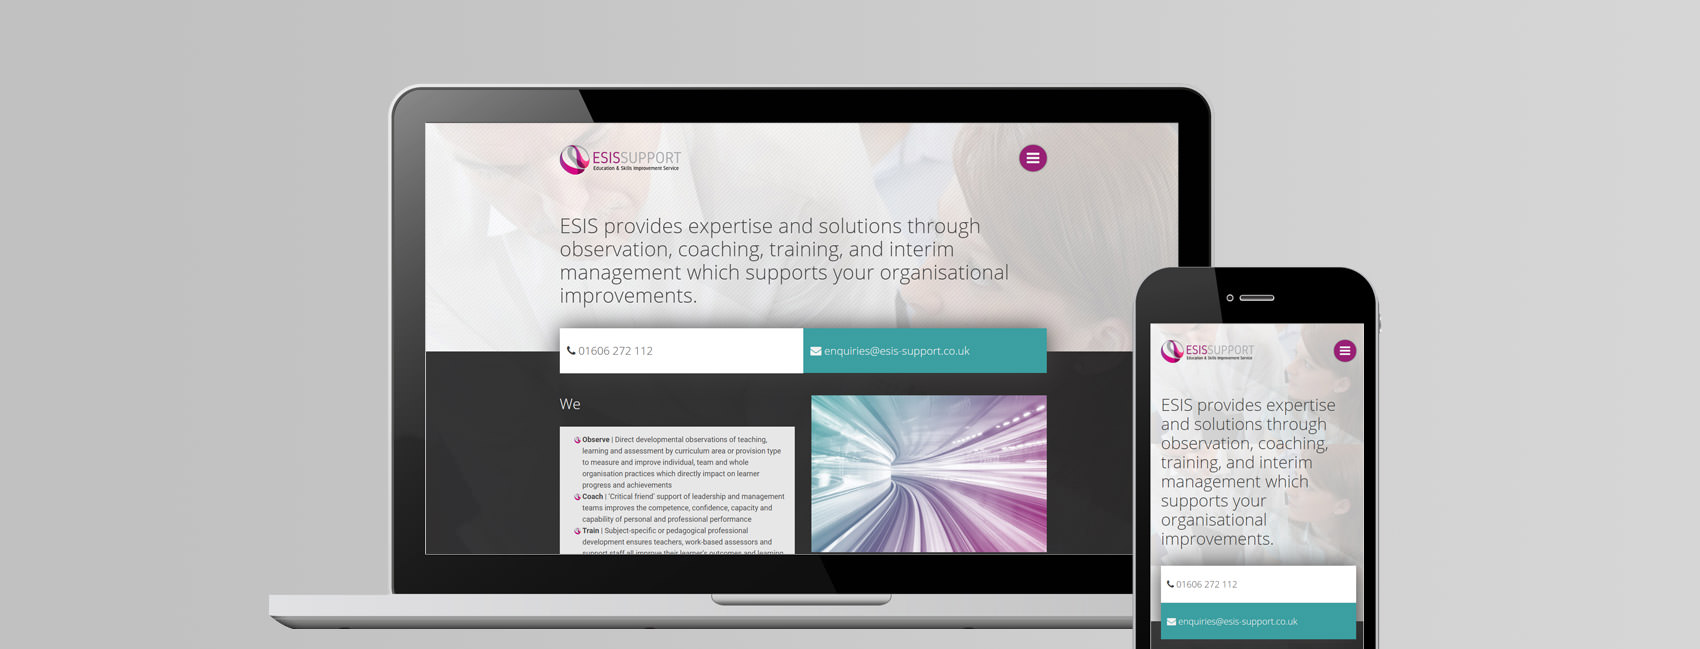 esis education website